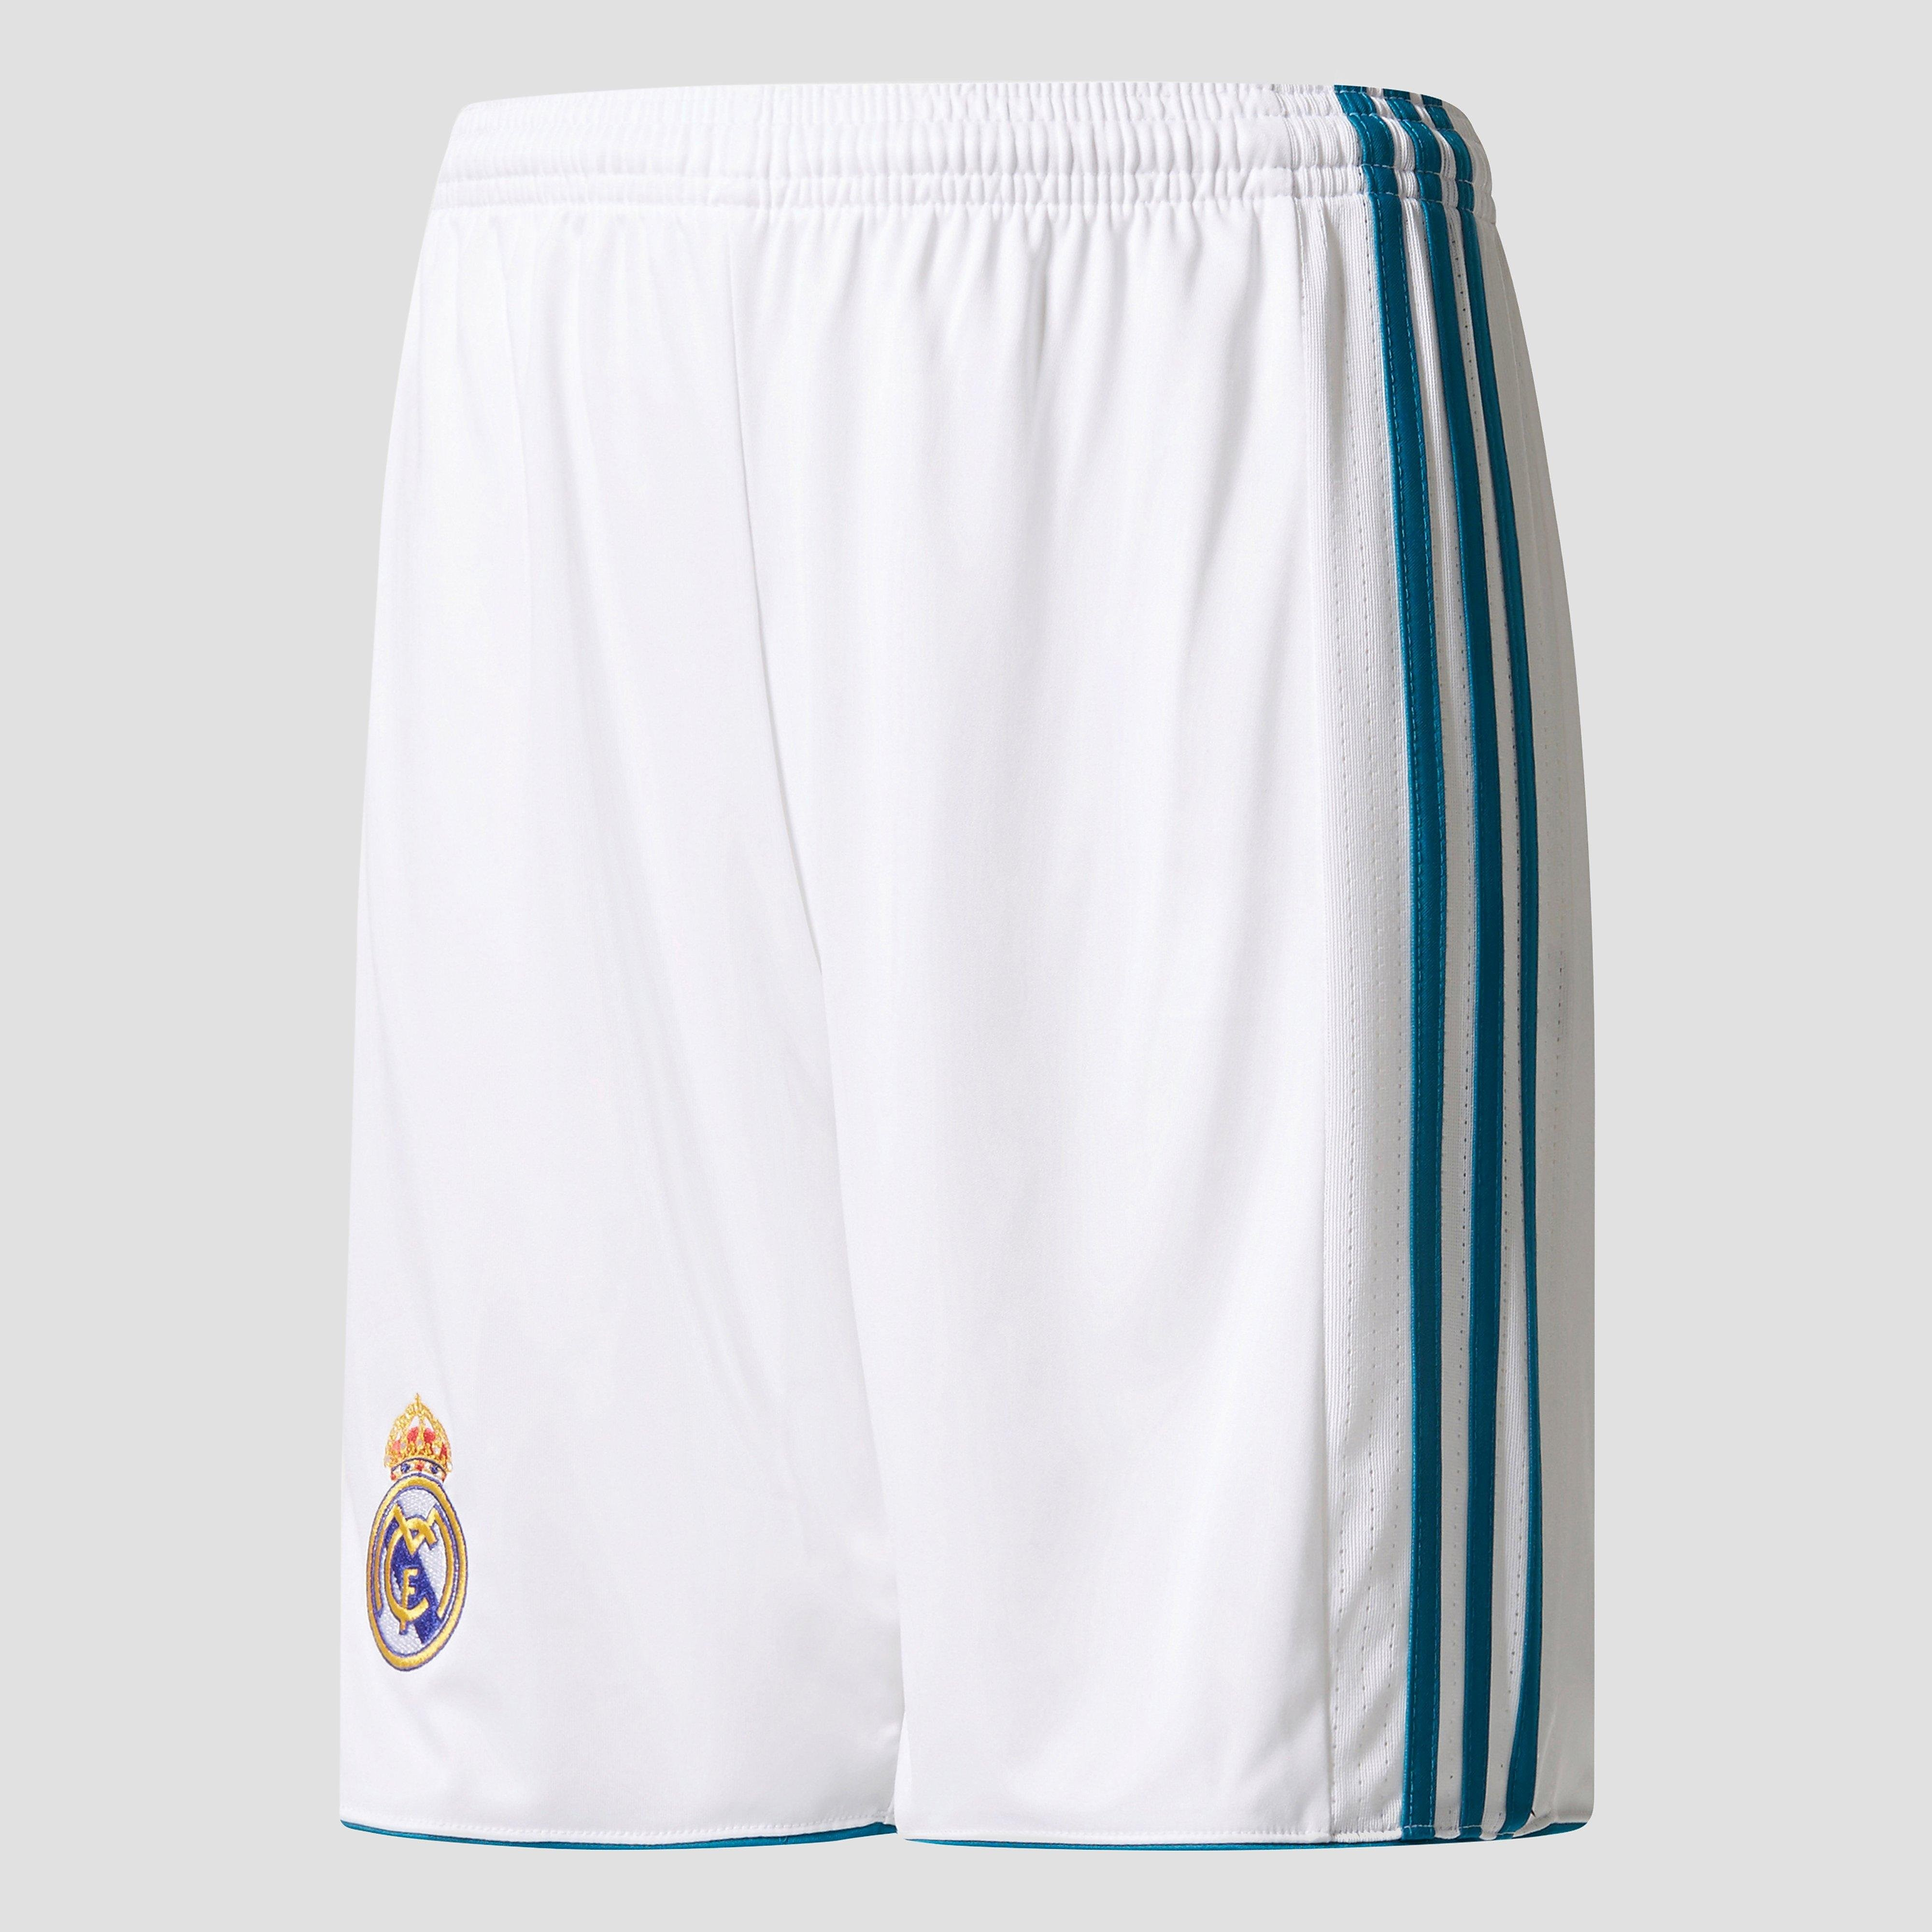 ADIDAS REAL MADRID THUISSHORT 17/18 WIT/GROEN KINDEREN